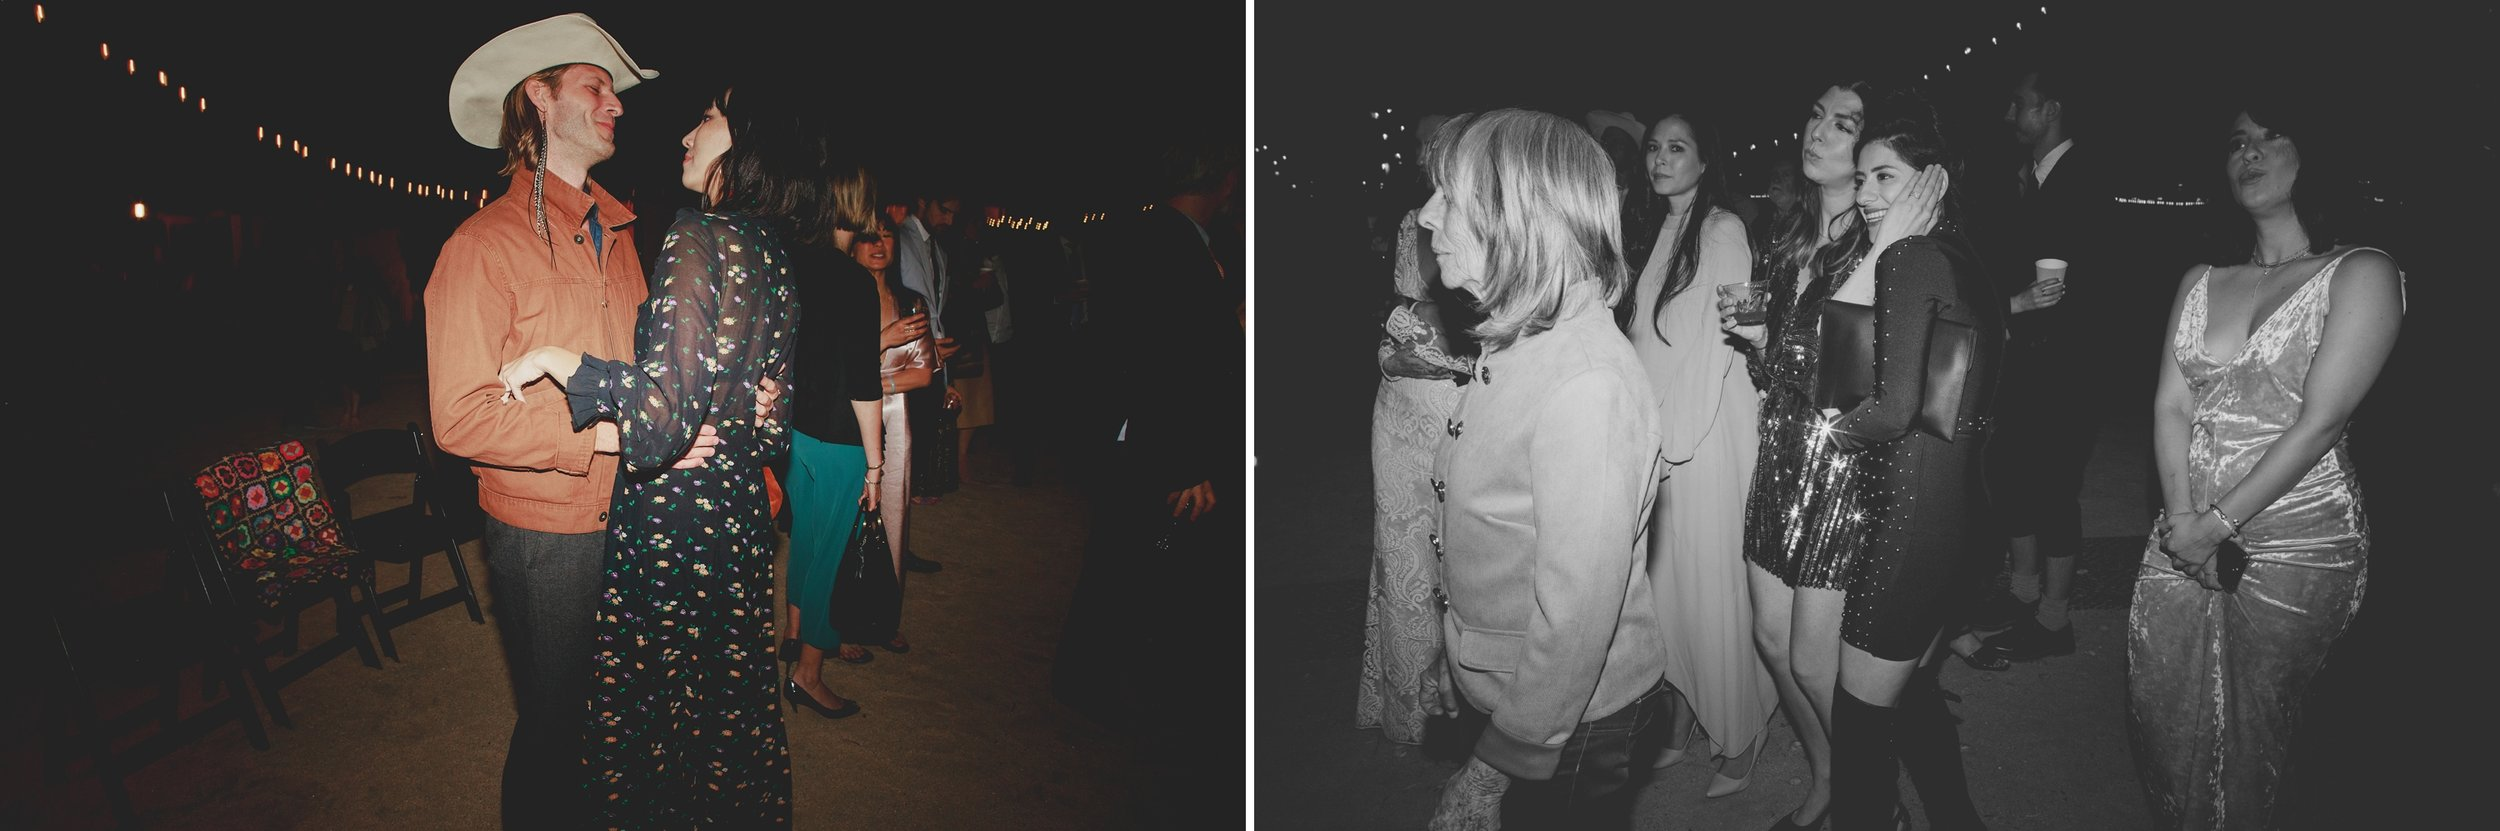 amanda_vanvels_joshua_tree_inn_wedding_181.jpg